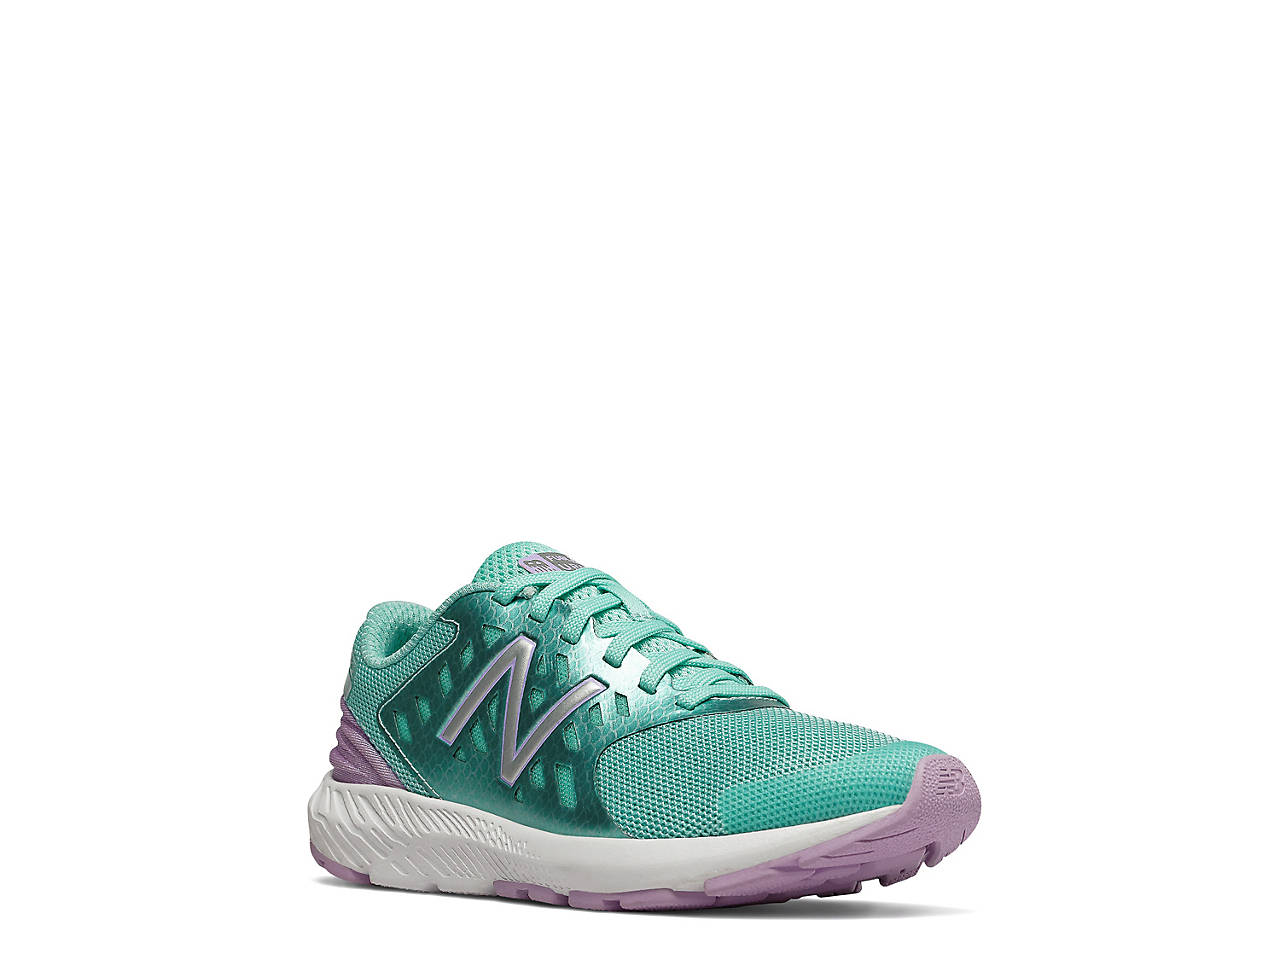 19dbe392d17e9 New Balance Fuel Core Urge Toddler & Youth Sneaker Kids Shoes   DSW